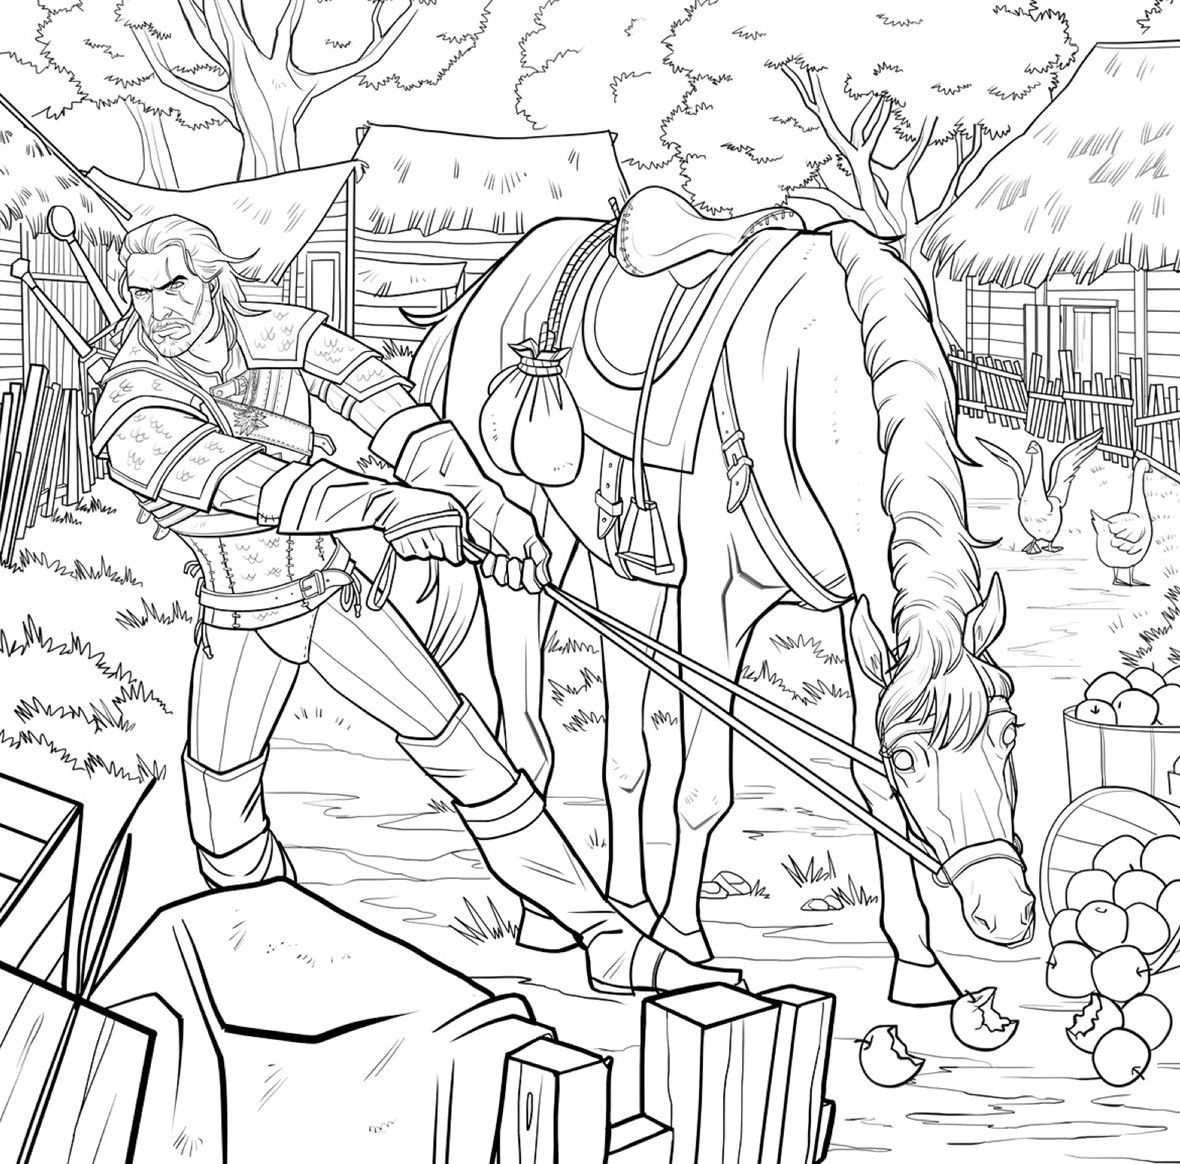 Leave Your Mark World Witcher Coloring Books Coloring Pages Cartoon Coloring Pages